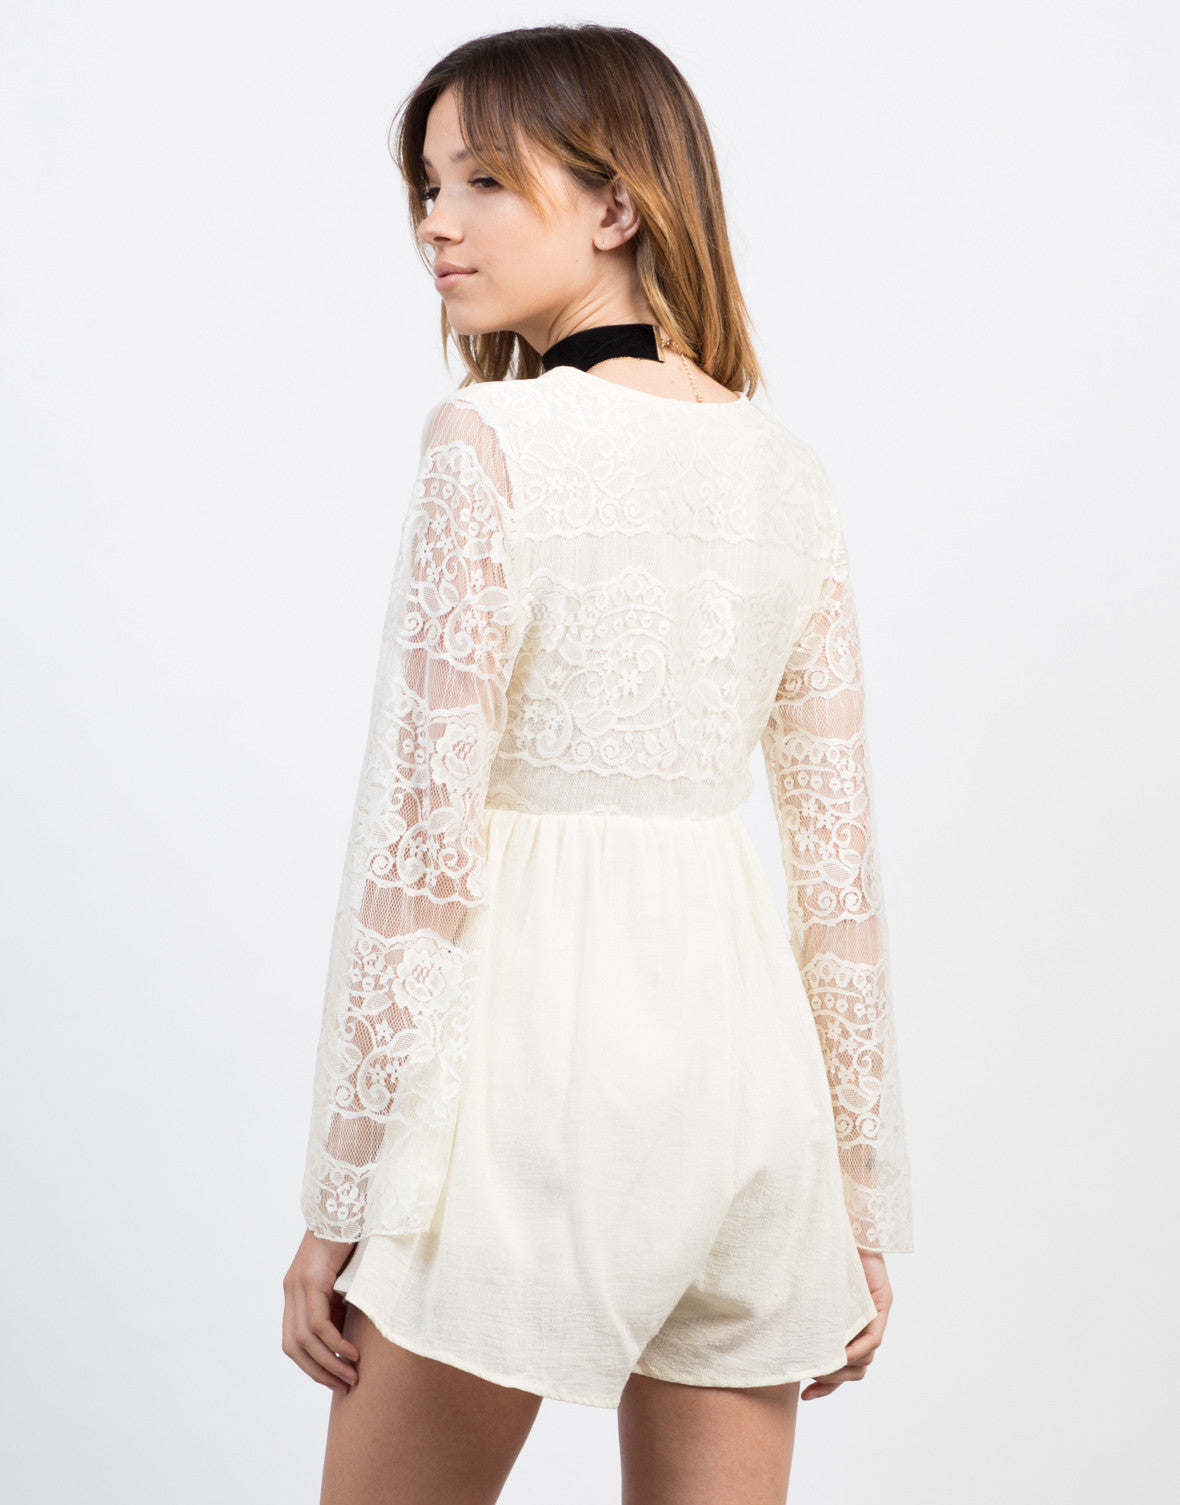 Back View of Victorian Lacey Romper